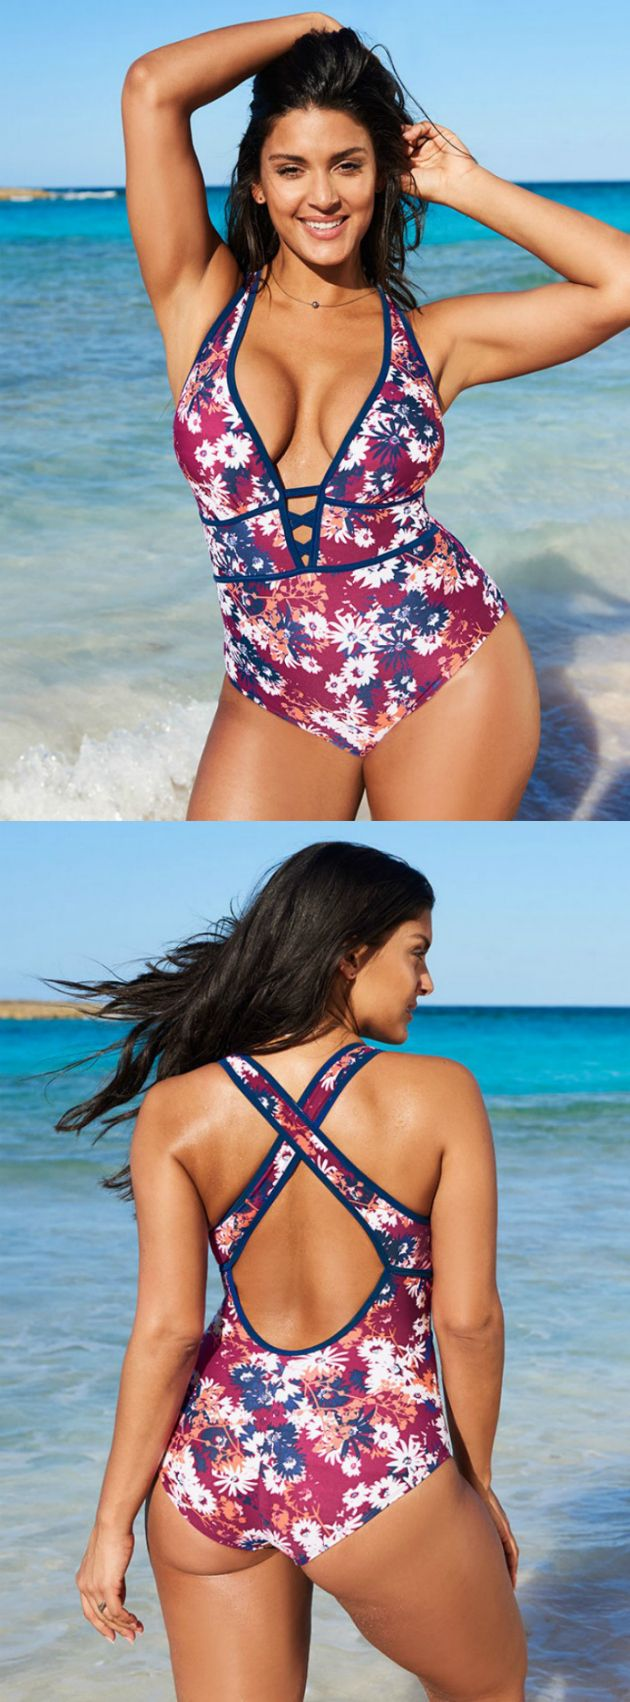 Plunge into summer with Mele. Our Ditsy Daisies print with deep blue piping makes this deep plunging one piece irresistible.